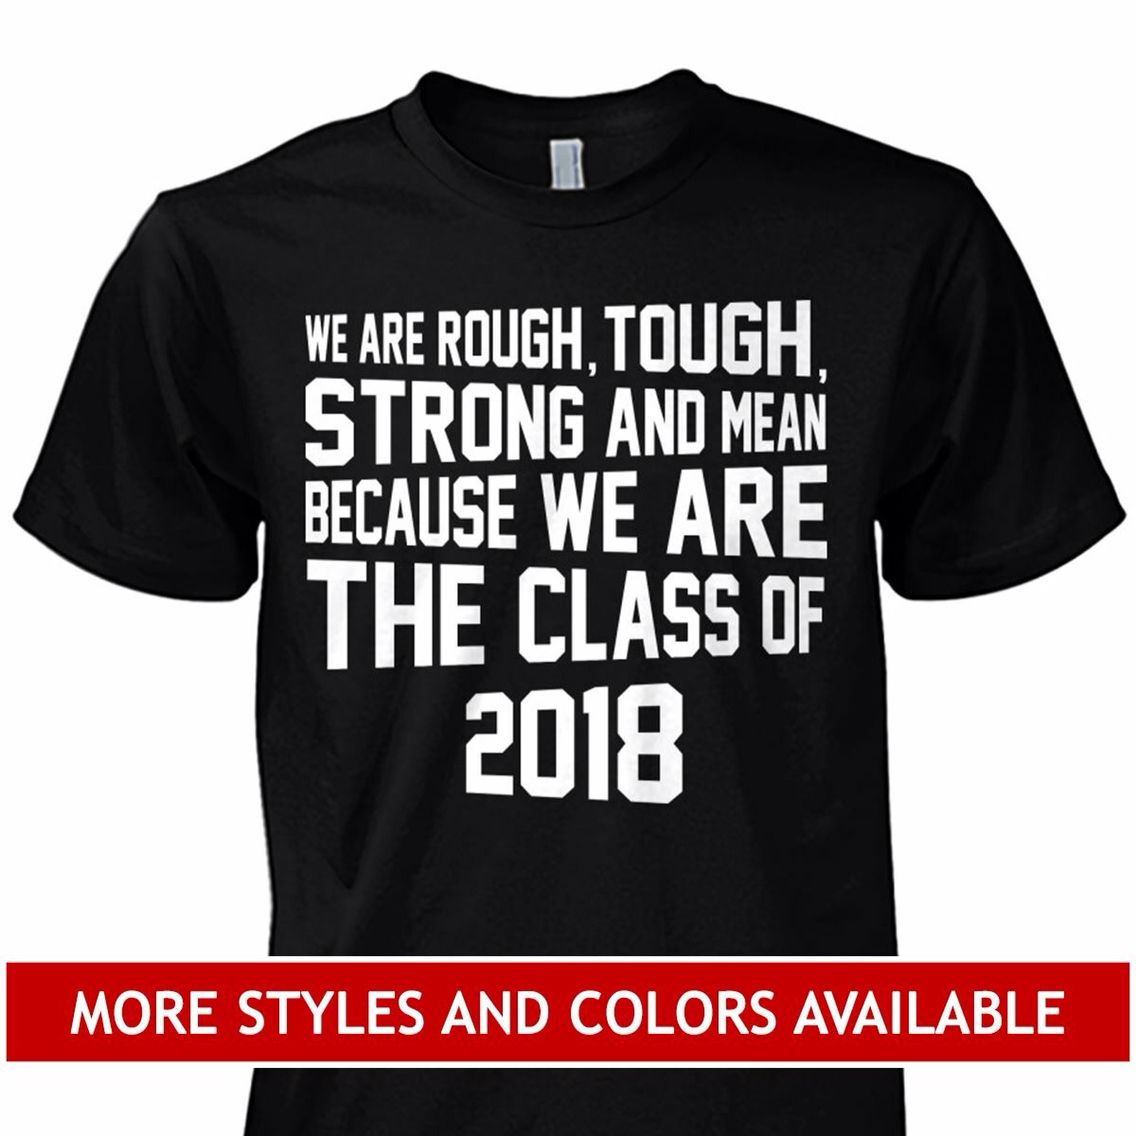 Ideas For Shirt Designs t shirt design ideas Class Or 2018 Shirts